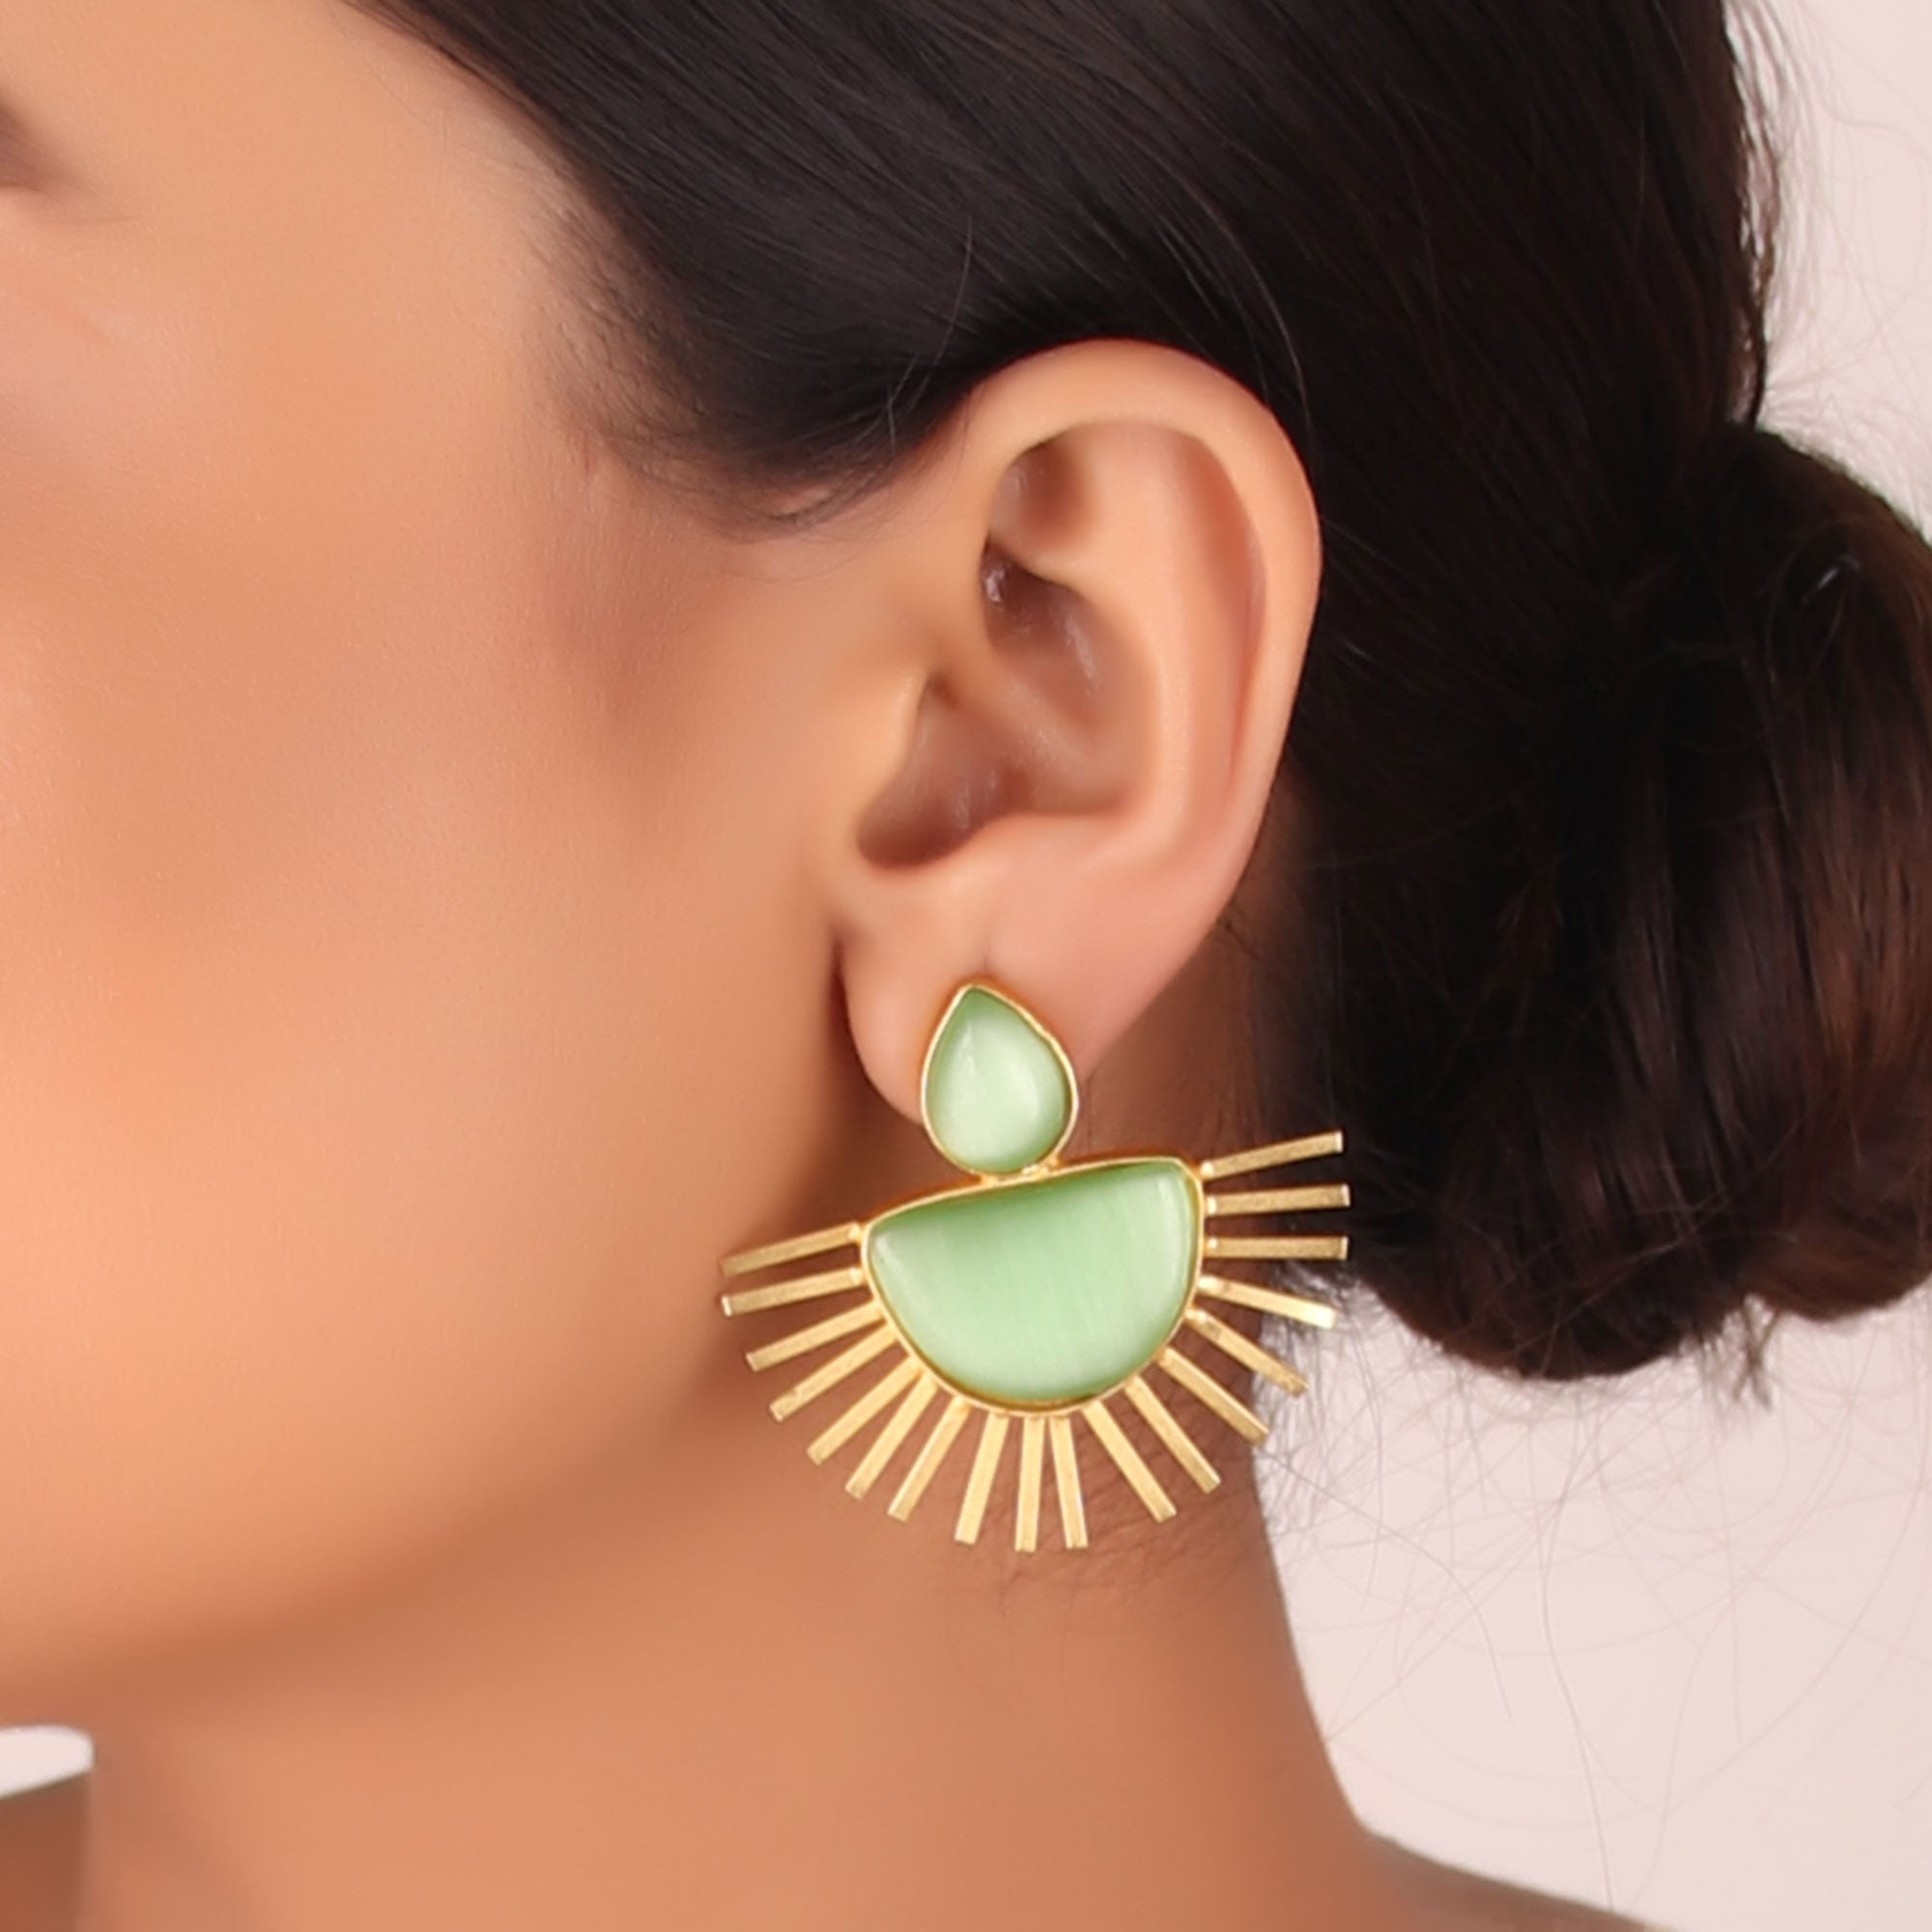 Earrings,The Rising Golden Diya - Cippele Multi Store